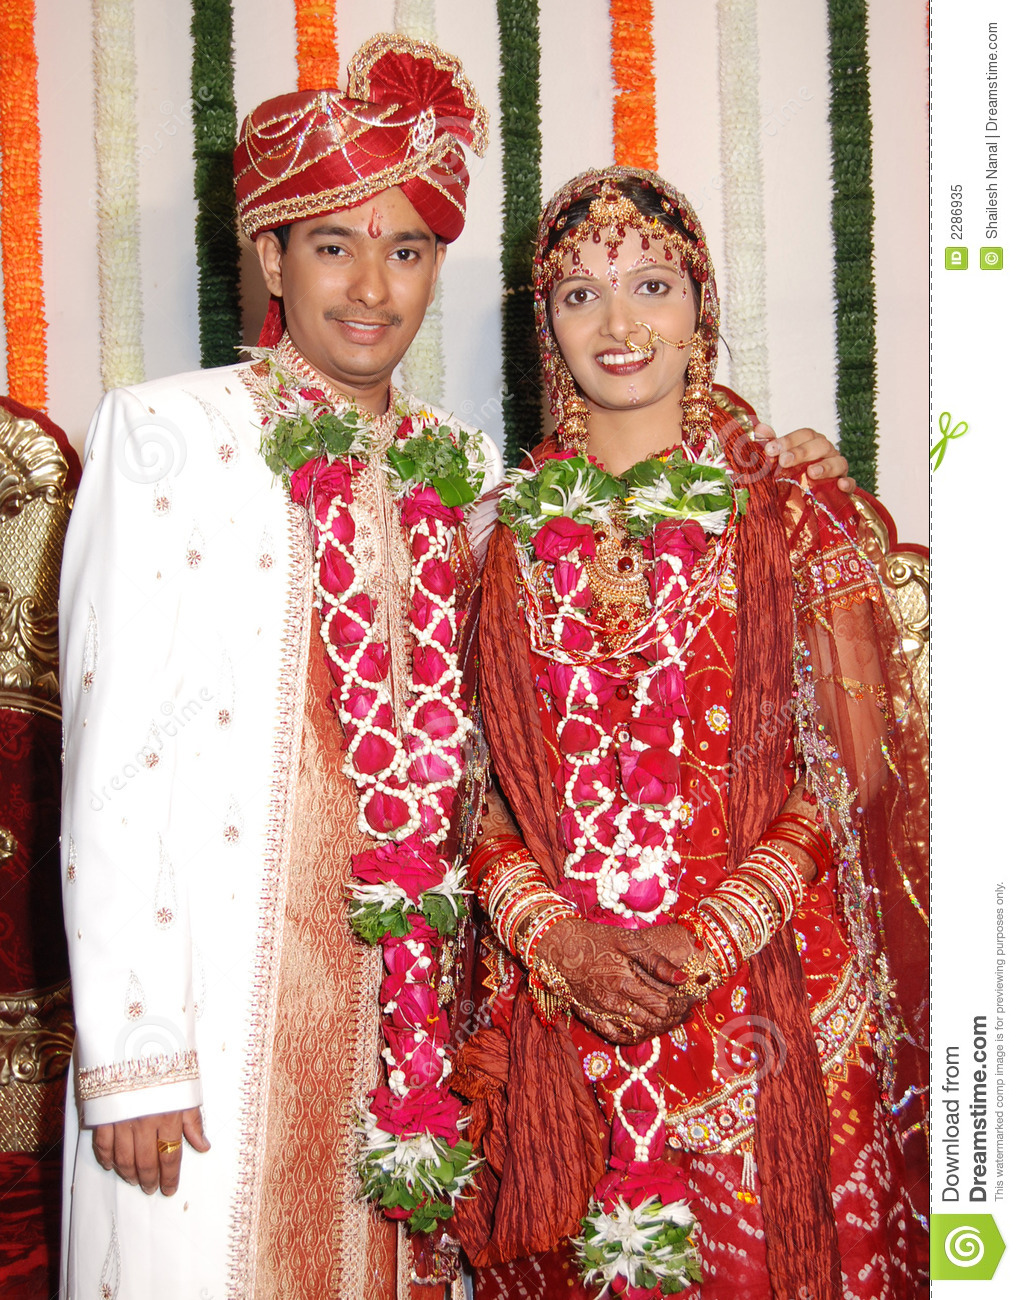 Indian Bride and Groom stock image. Image of costume, ornamental ...